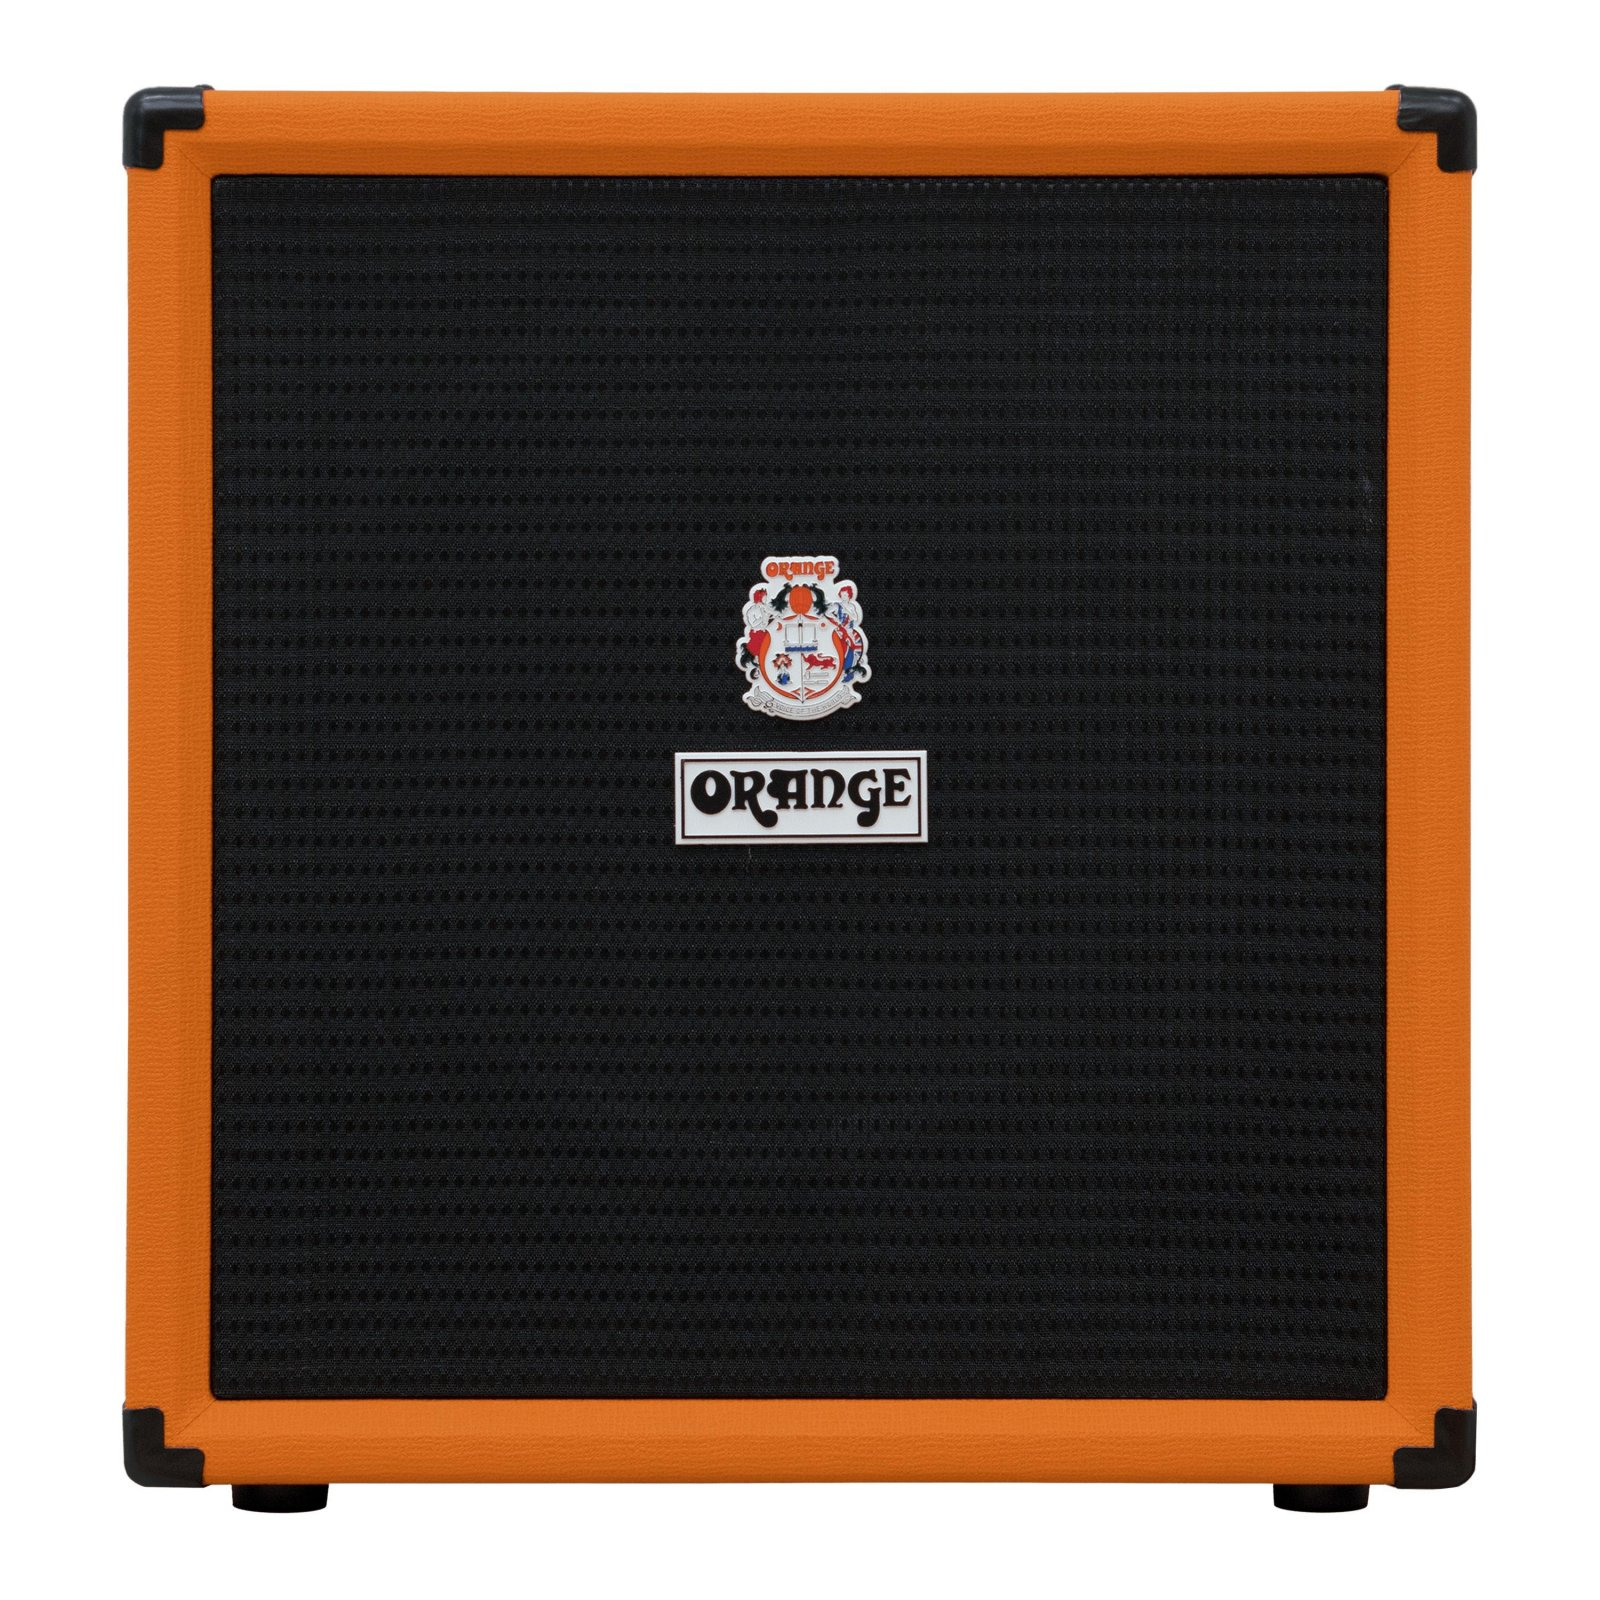 Crush 100 Bass Amplifier